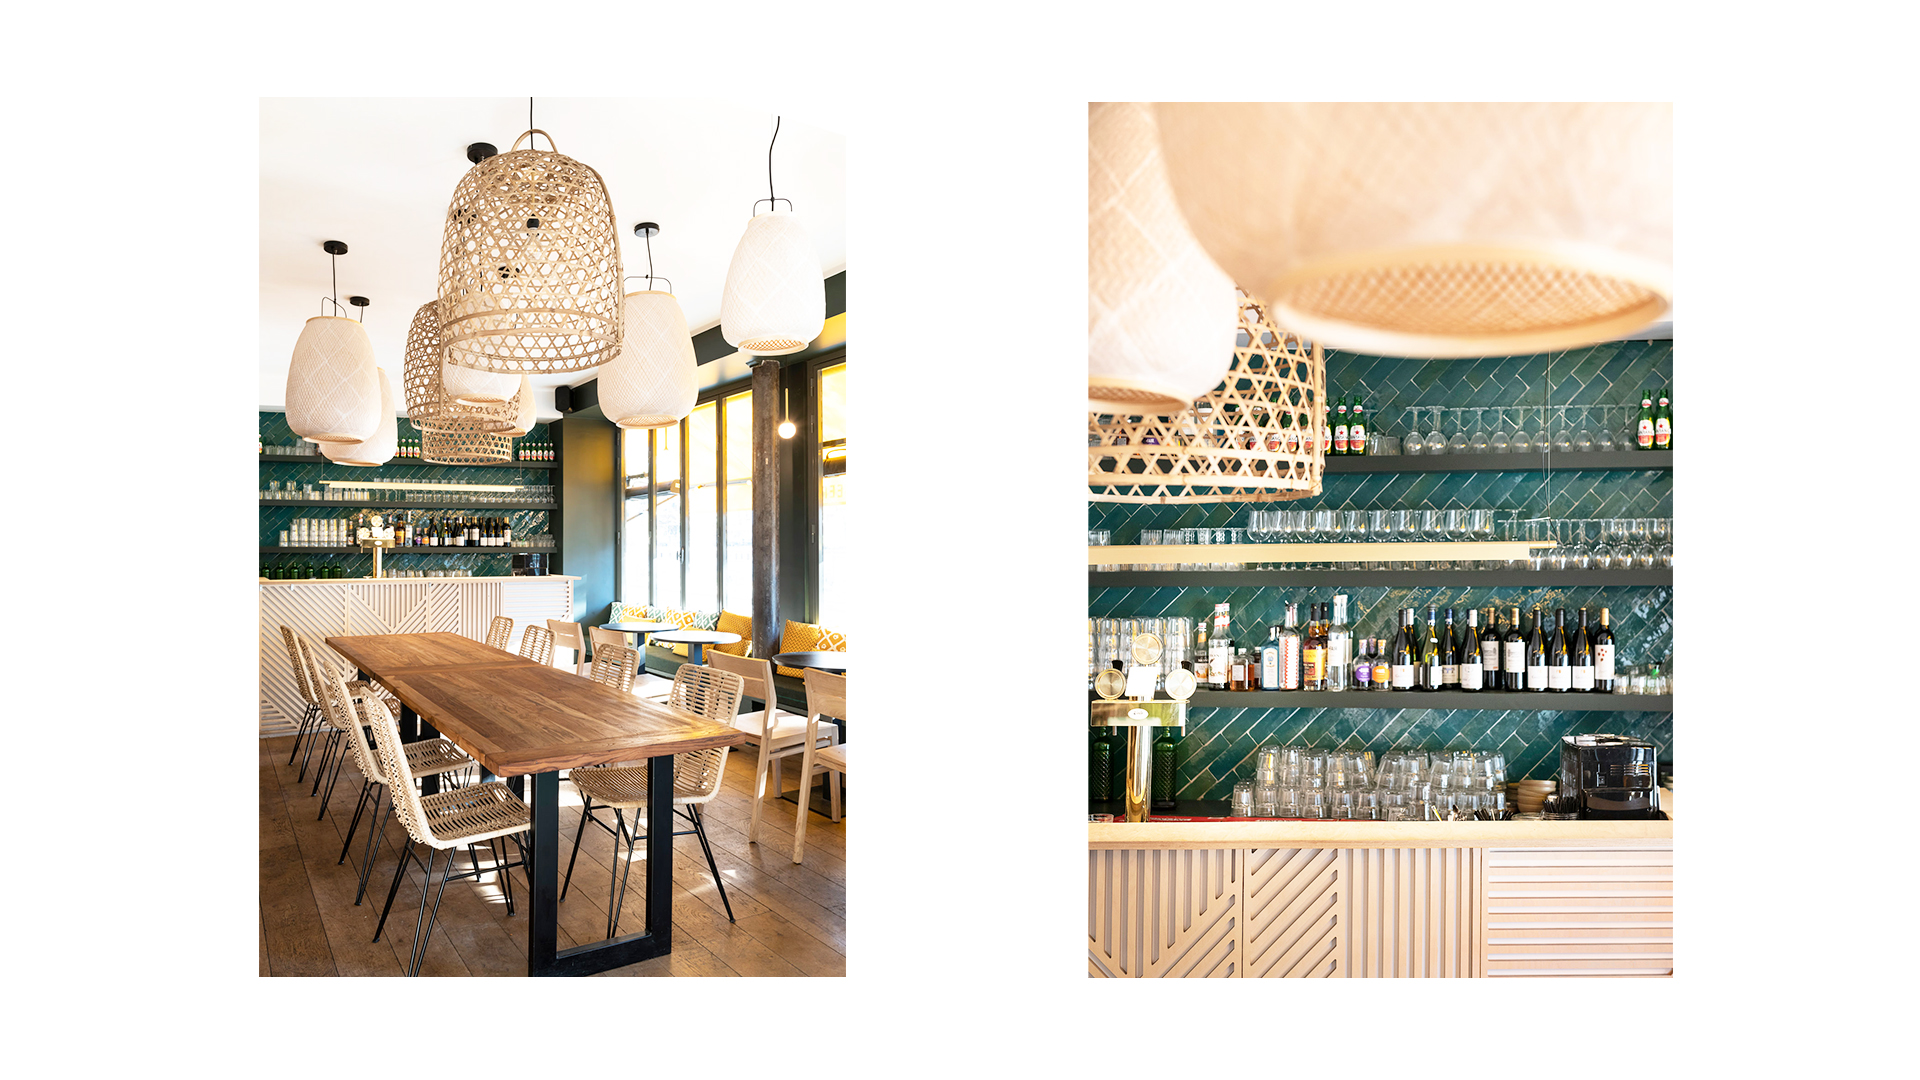 Djawa - restaurant - interior architecture - Paris - counter - bar - wood - faience